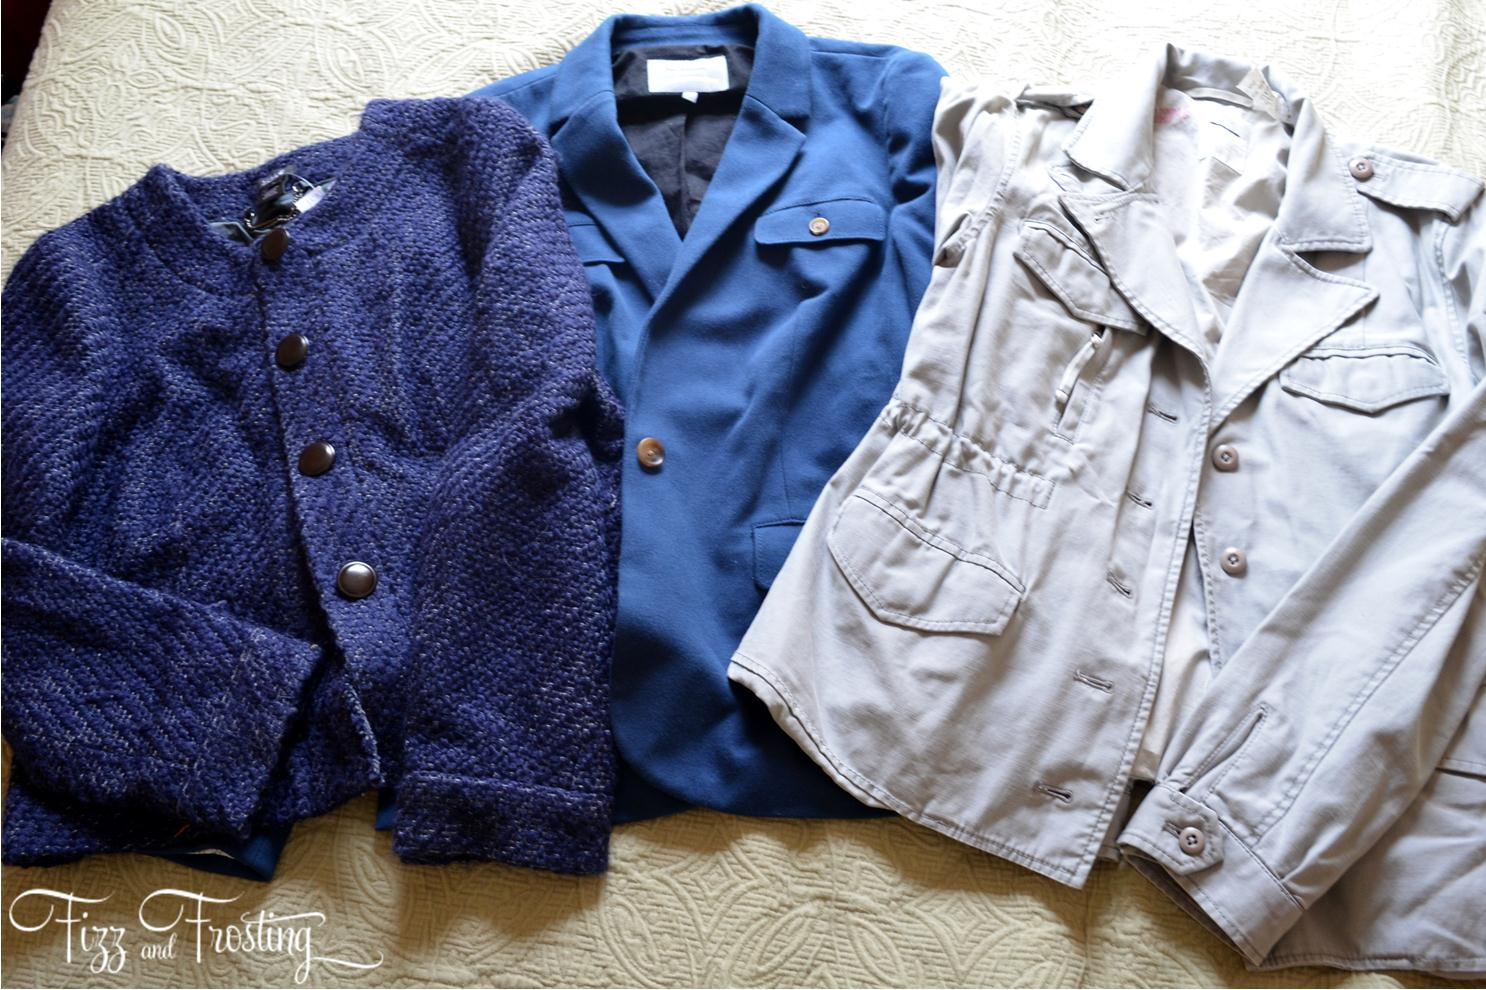 J.Crew Warehouse Sales and Stores | By Lauren M